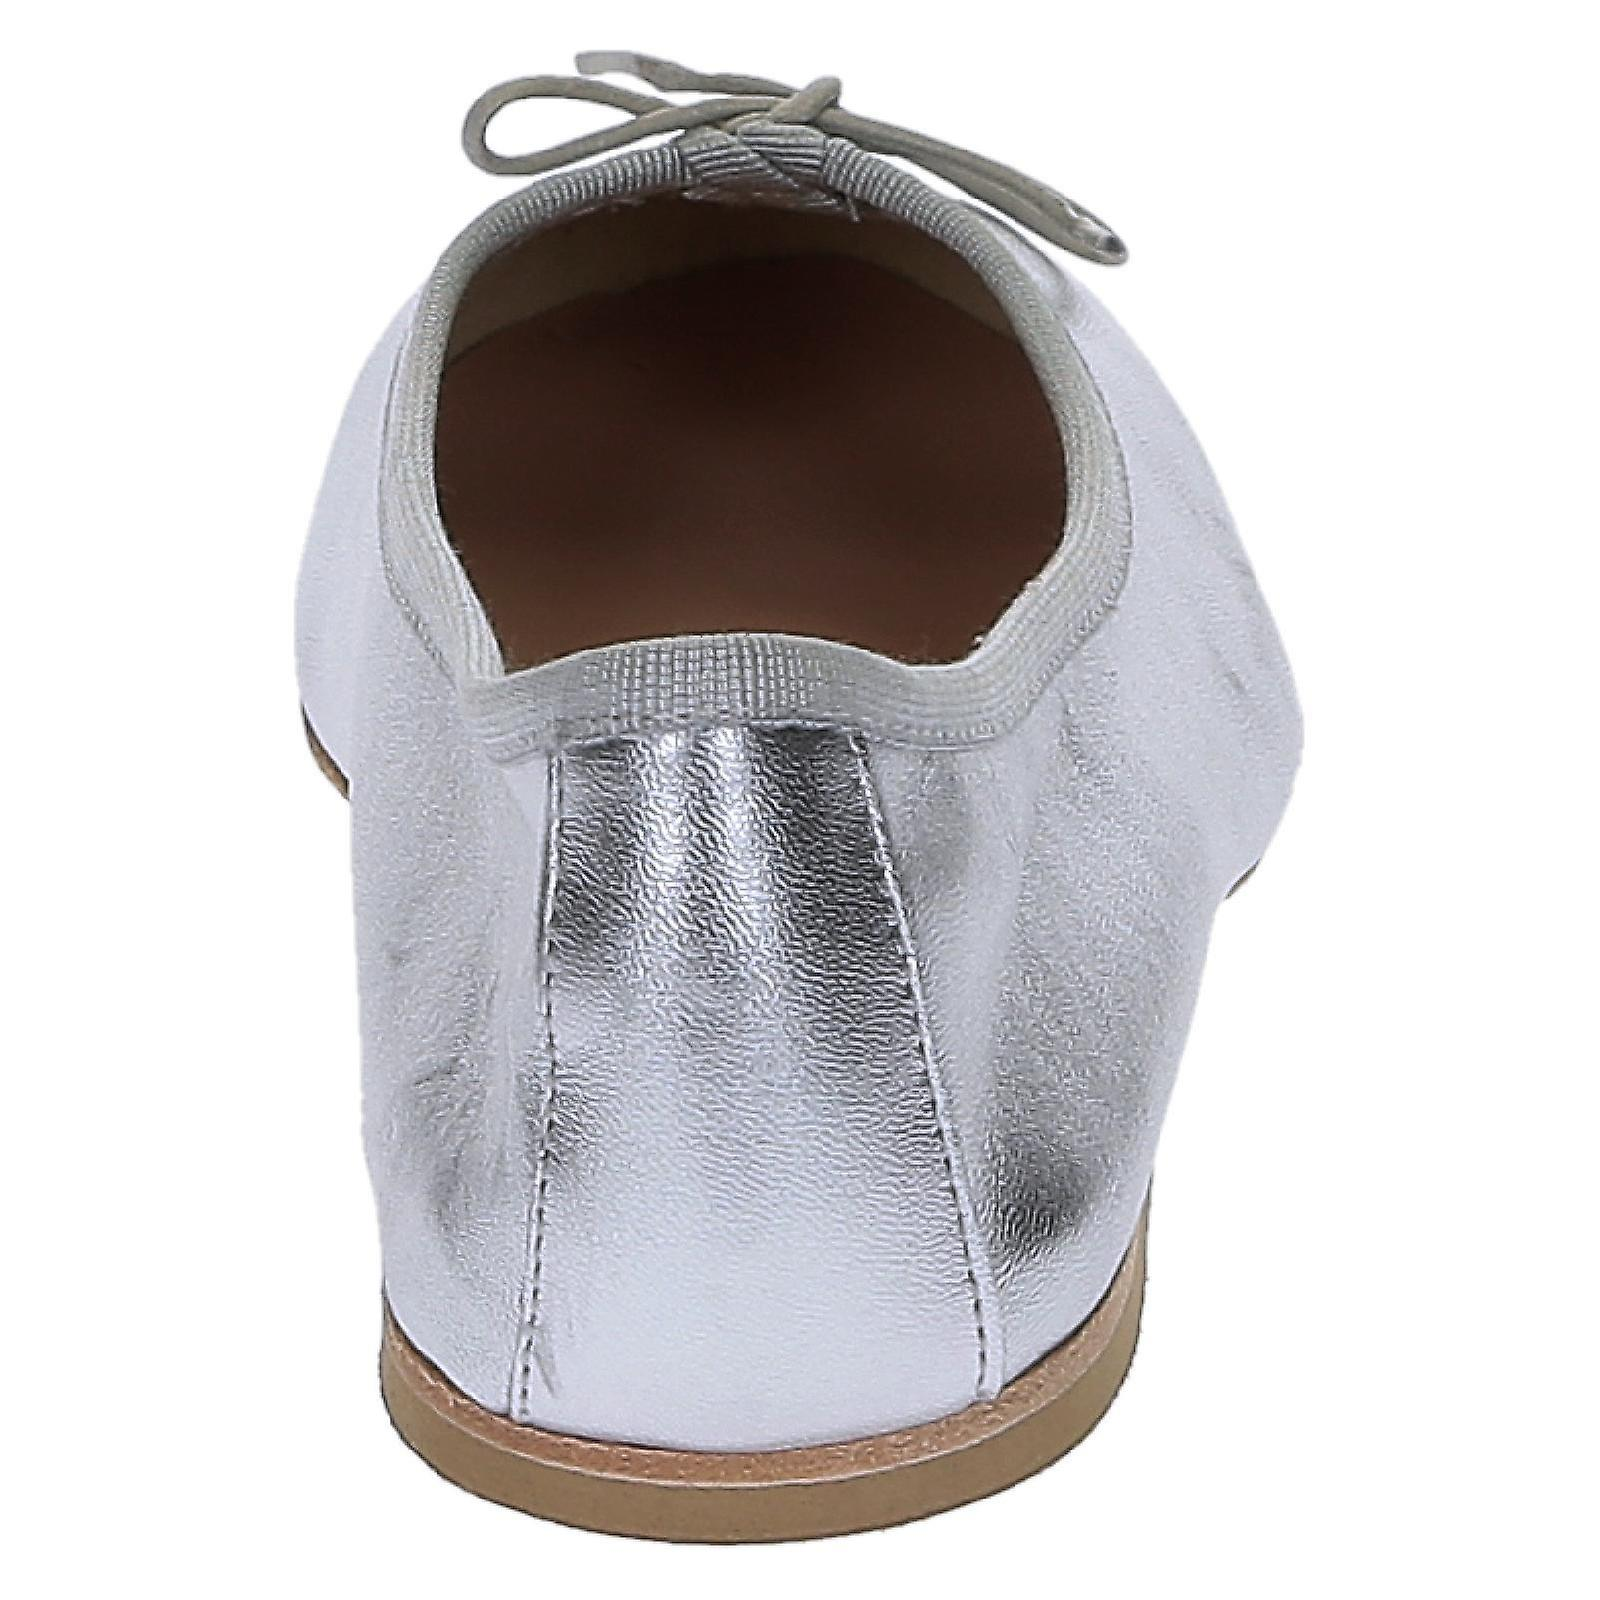 Silver laminated soft leather ballet flats ballerinas shoes